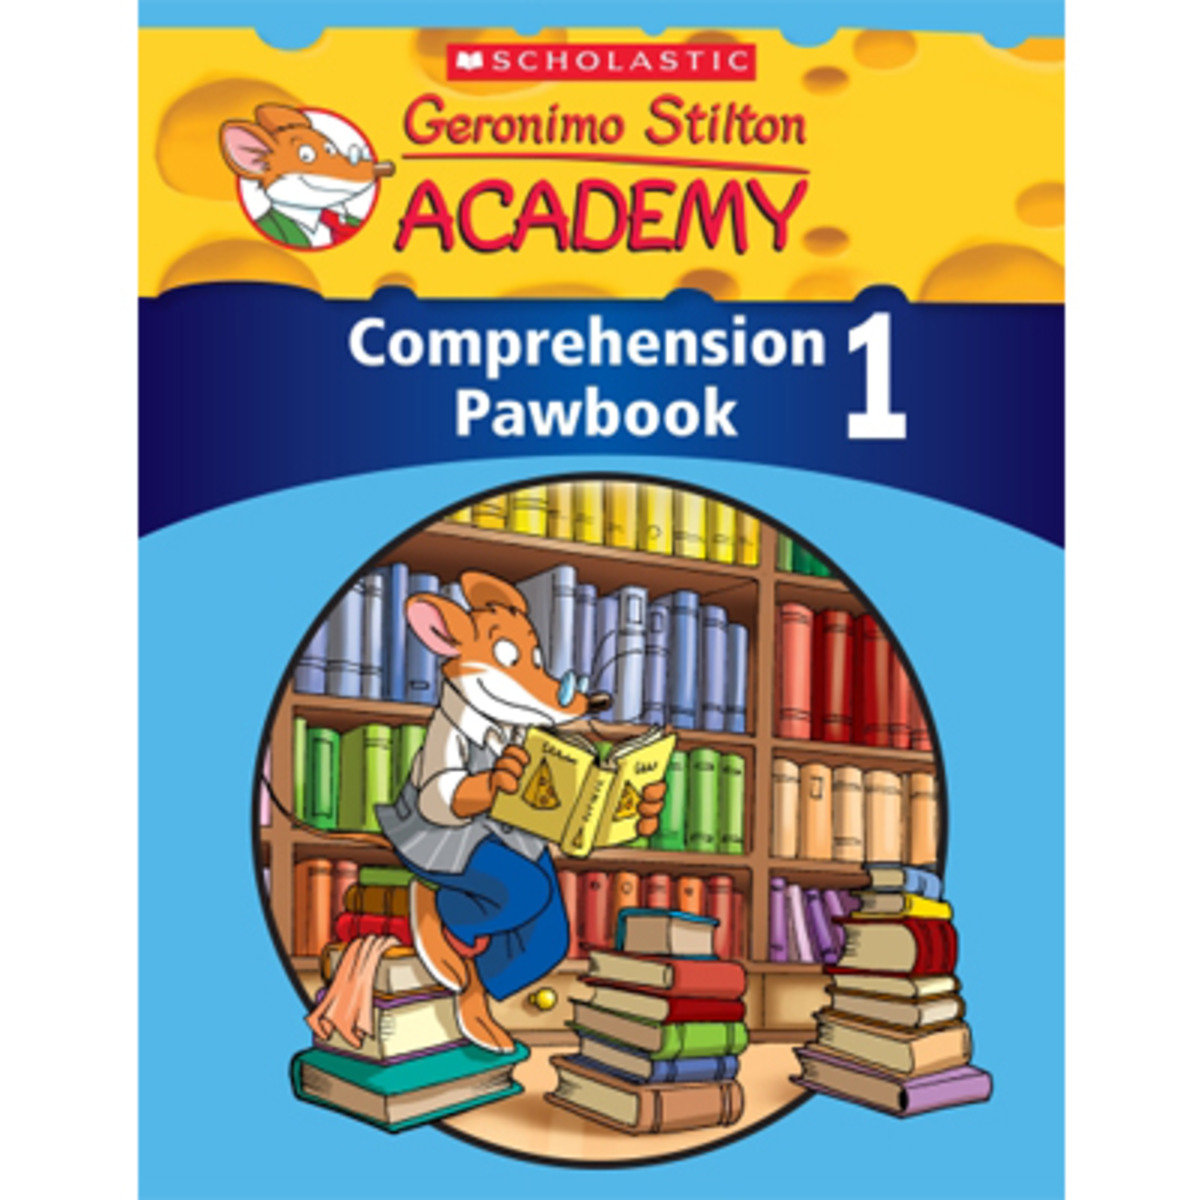 Geronimo Stilton Academy: Comprehension Pawbook Level 1 9789814629638